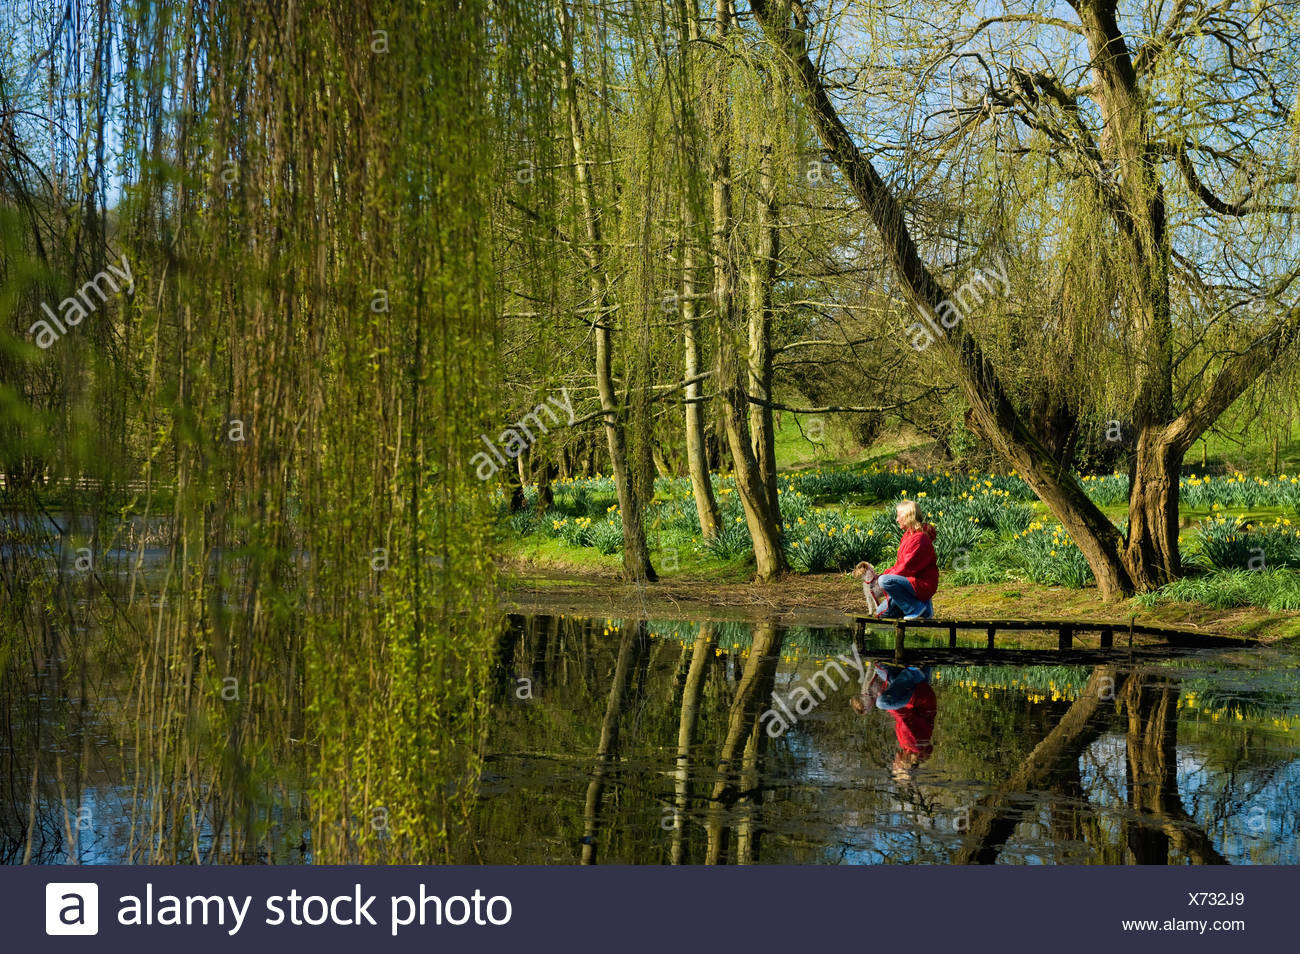 A woman and a small dog standing on a jetty by a lake. - Stock Image